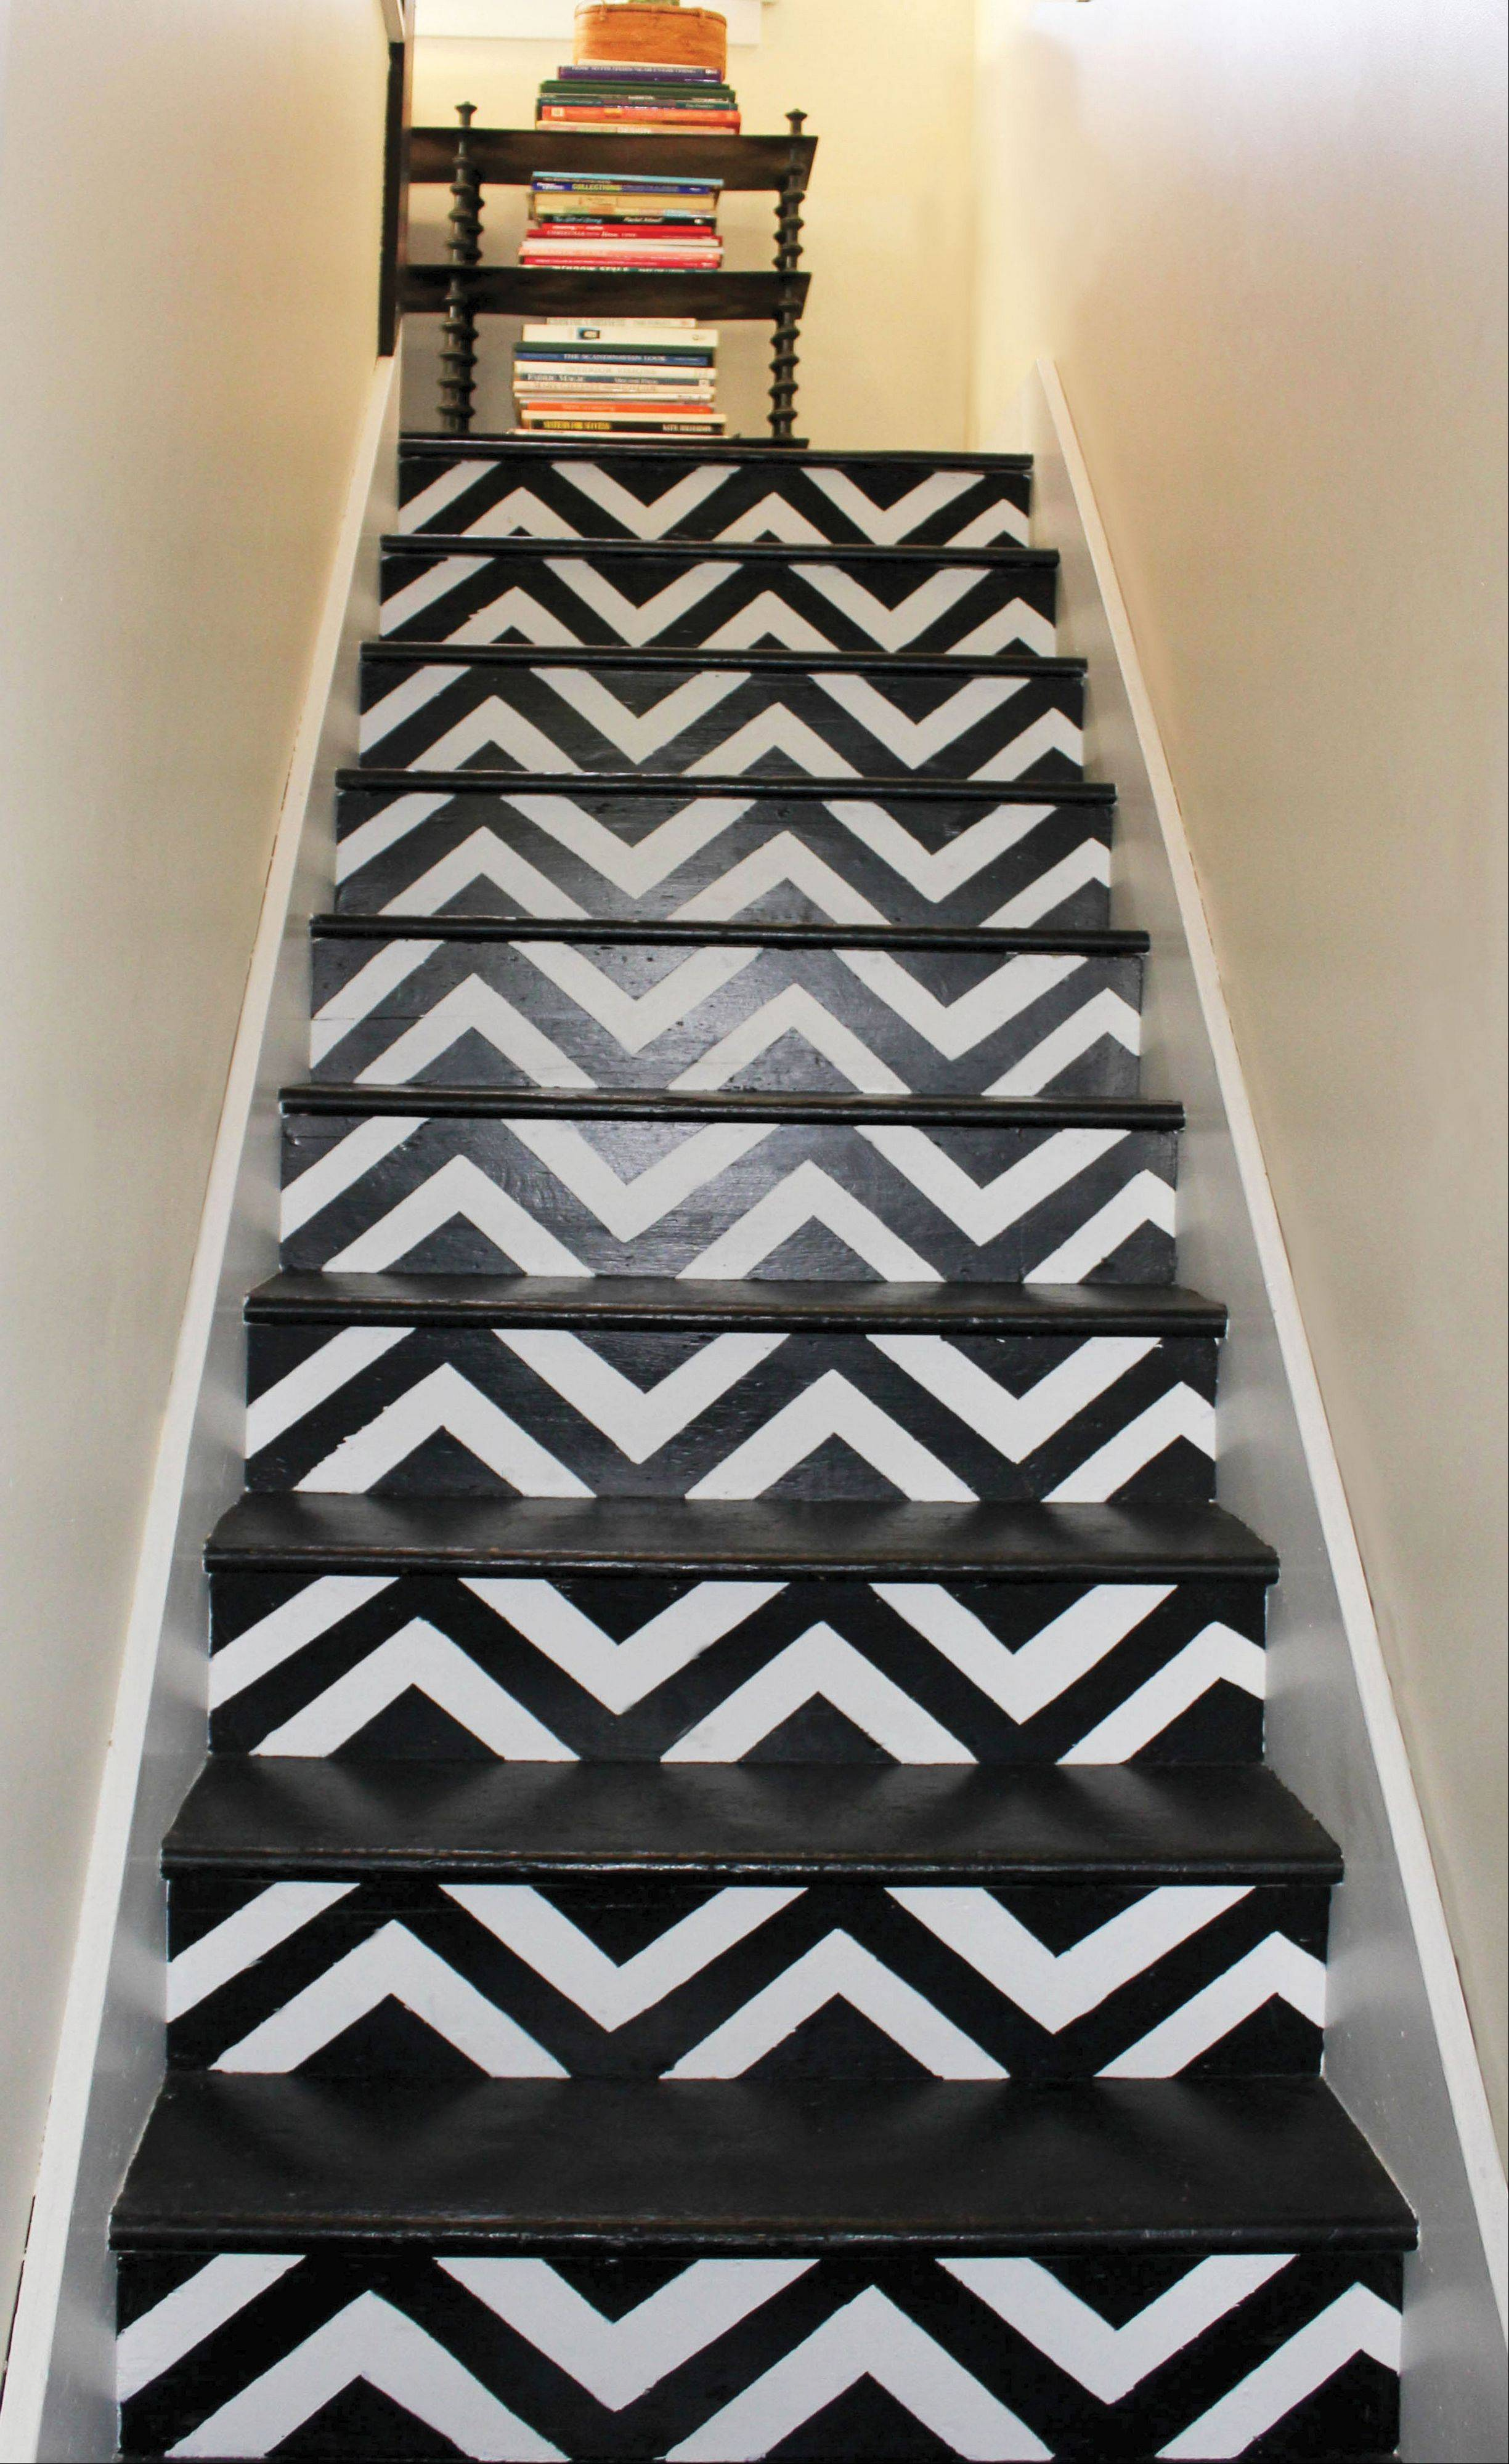 Chevron stripes can add a bold punch to your risers.